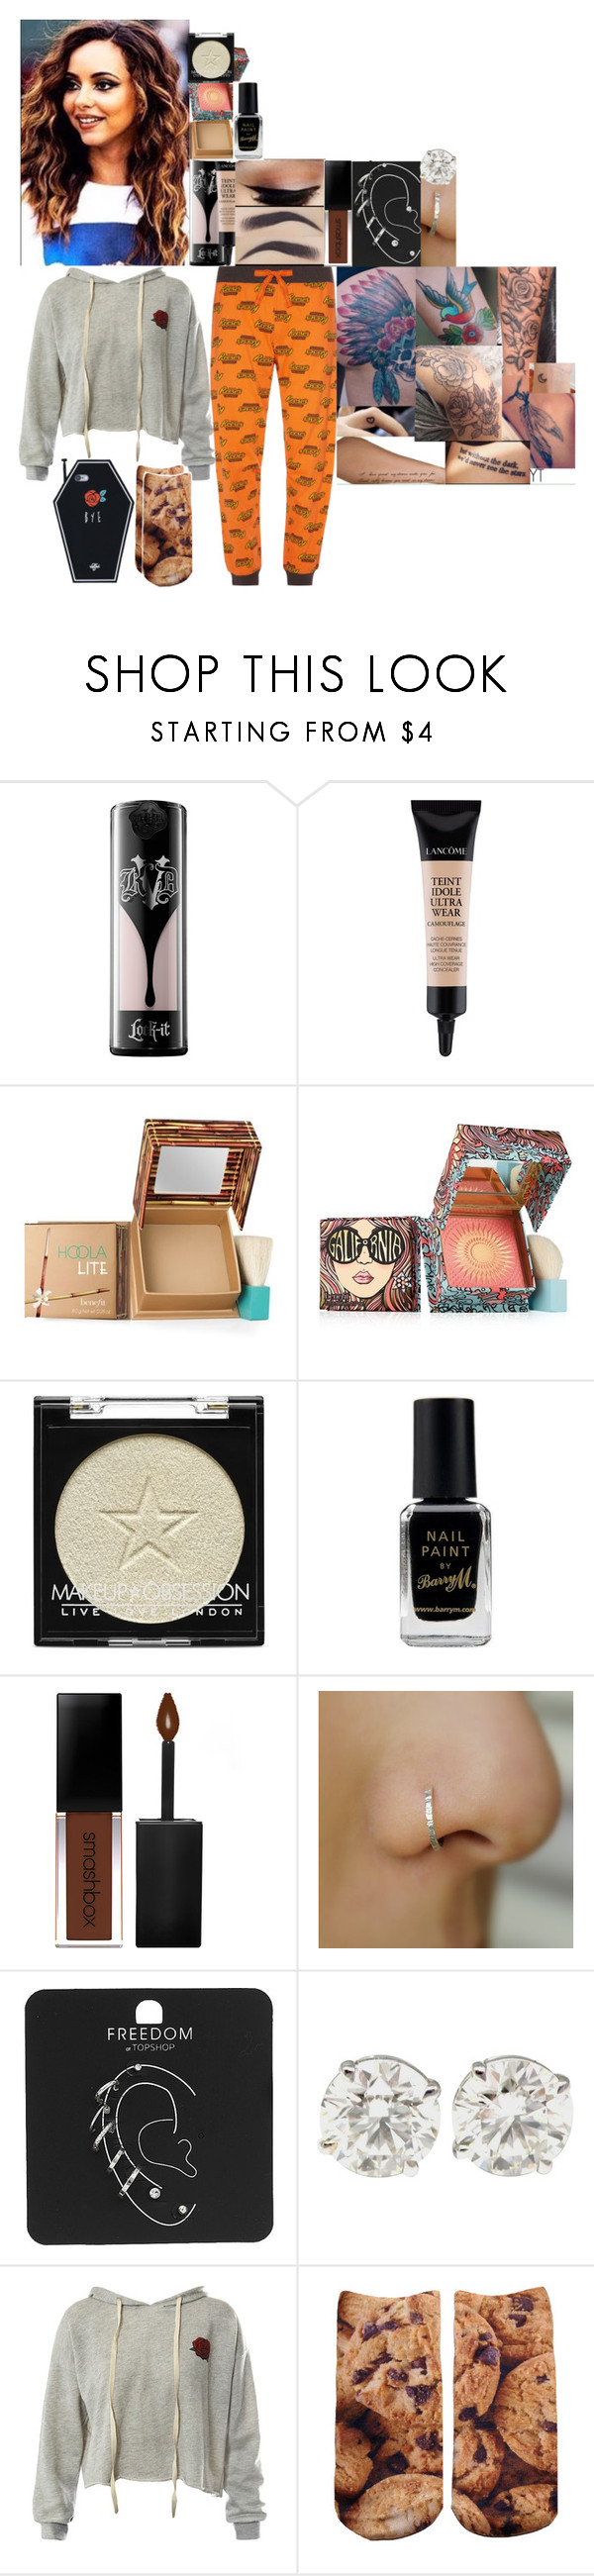 """""""Game of phones video"""" by fuckmeirwin ❤ liked on Polyvore featuring Kat Von D, Lancôme, Benefit, Barry M, Smashbox, Topshop, Sans Souci and Living Royal"""